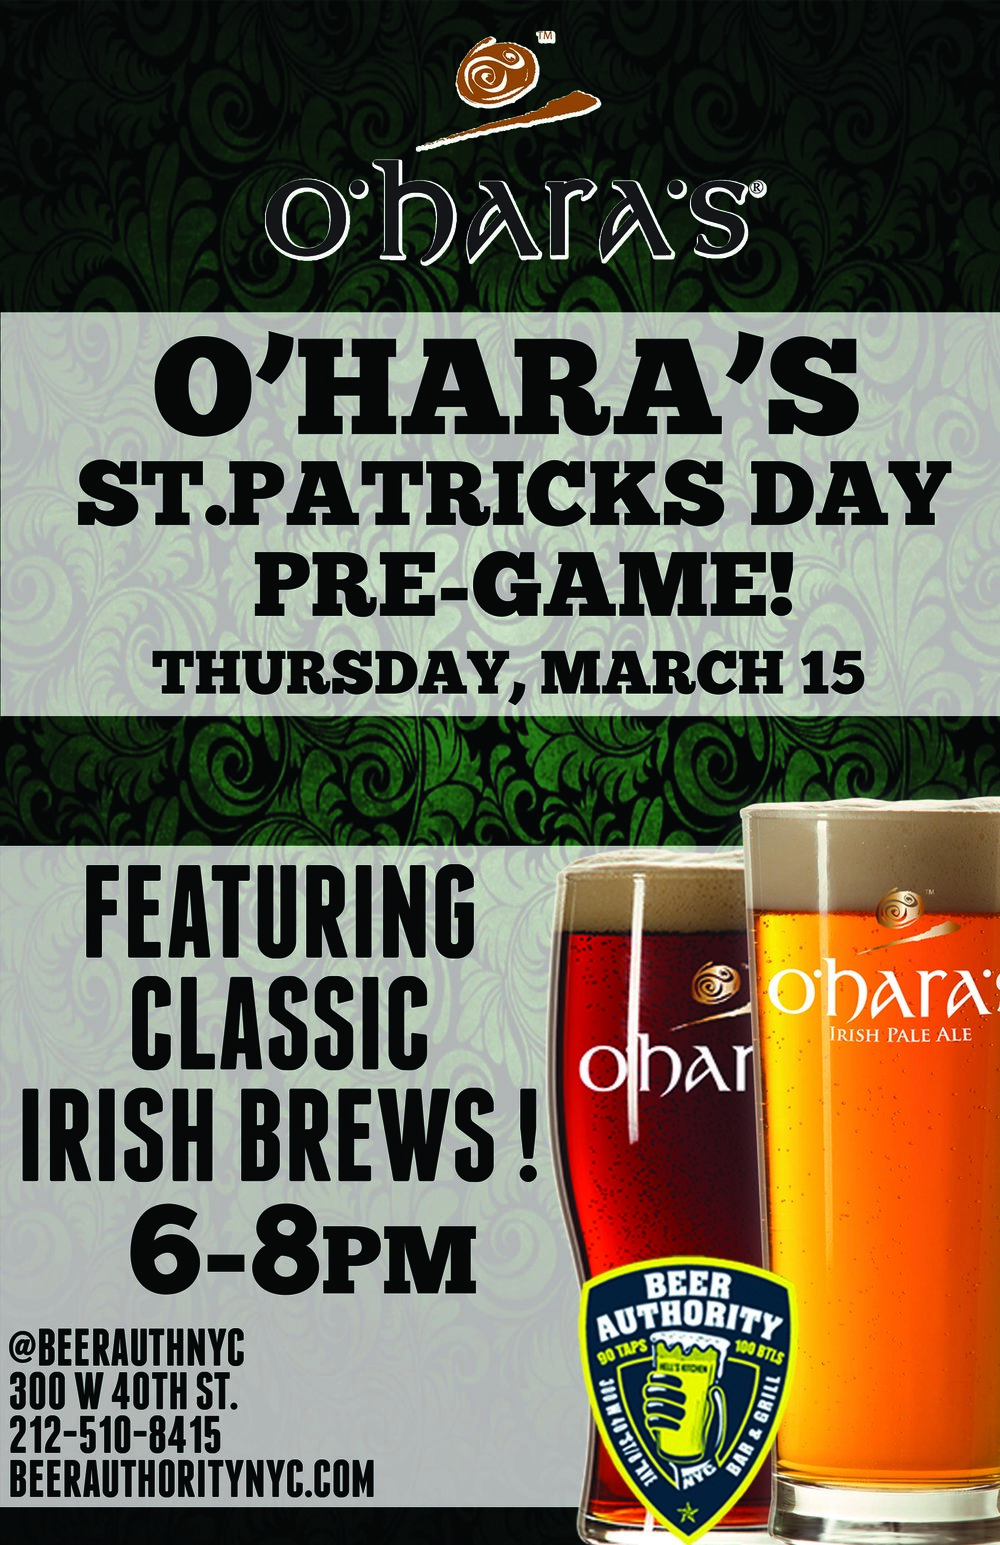 BEER AUTHORITY_OHARAS ST PATS PRE GAME.jpg